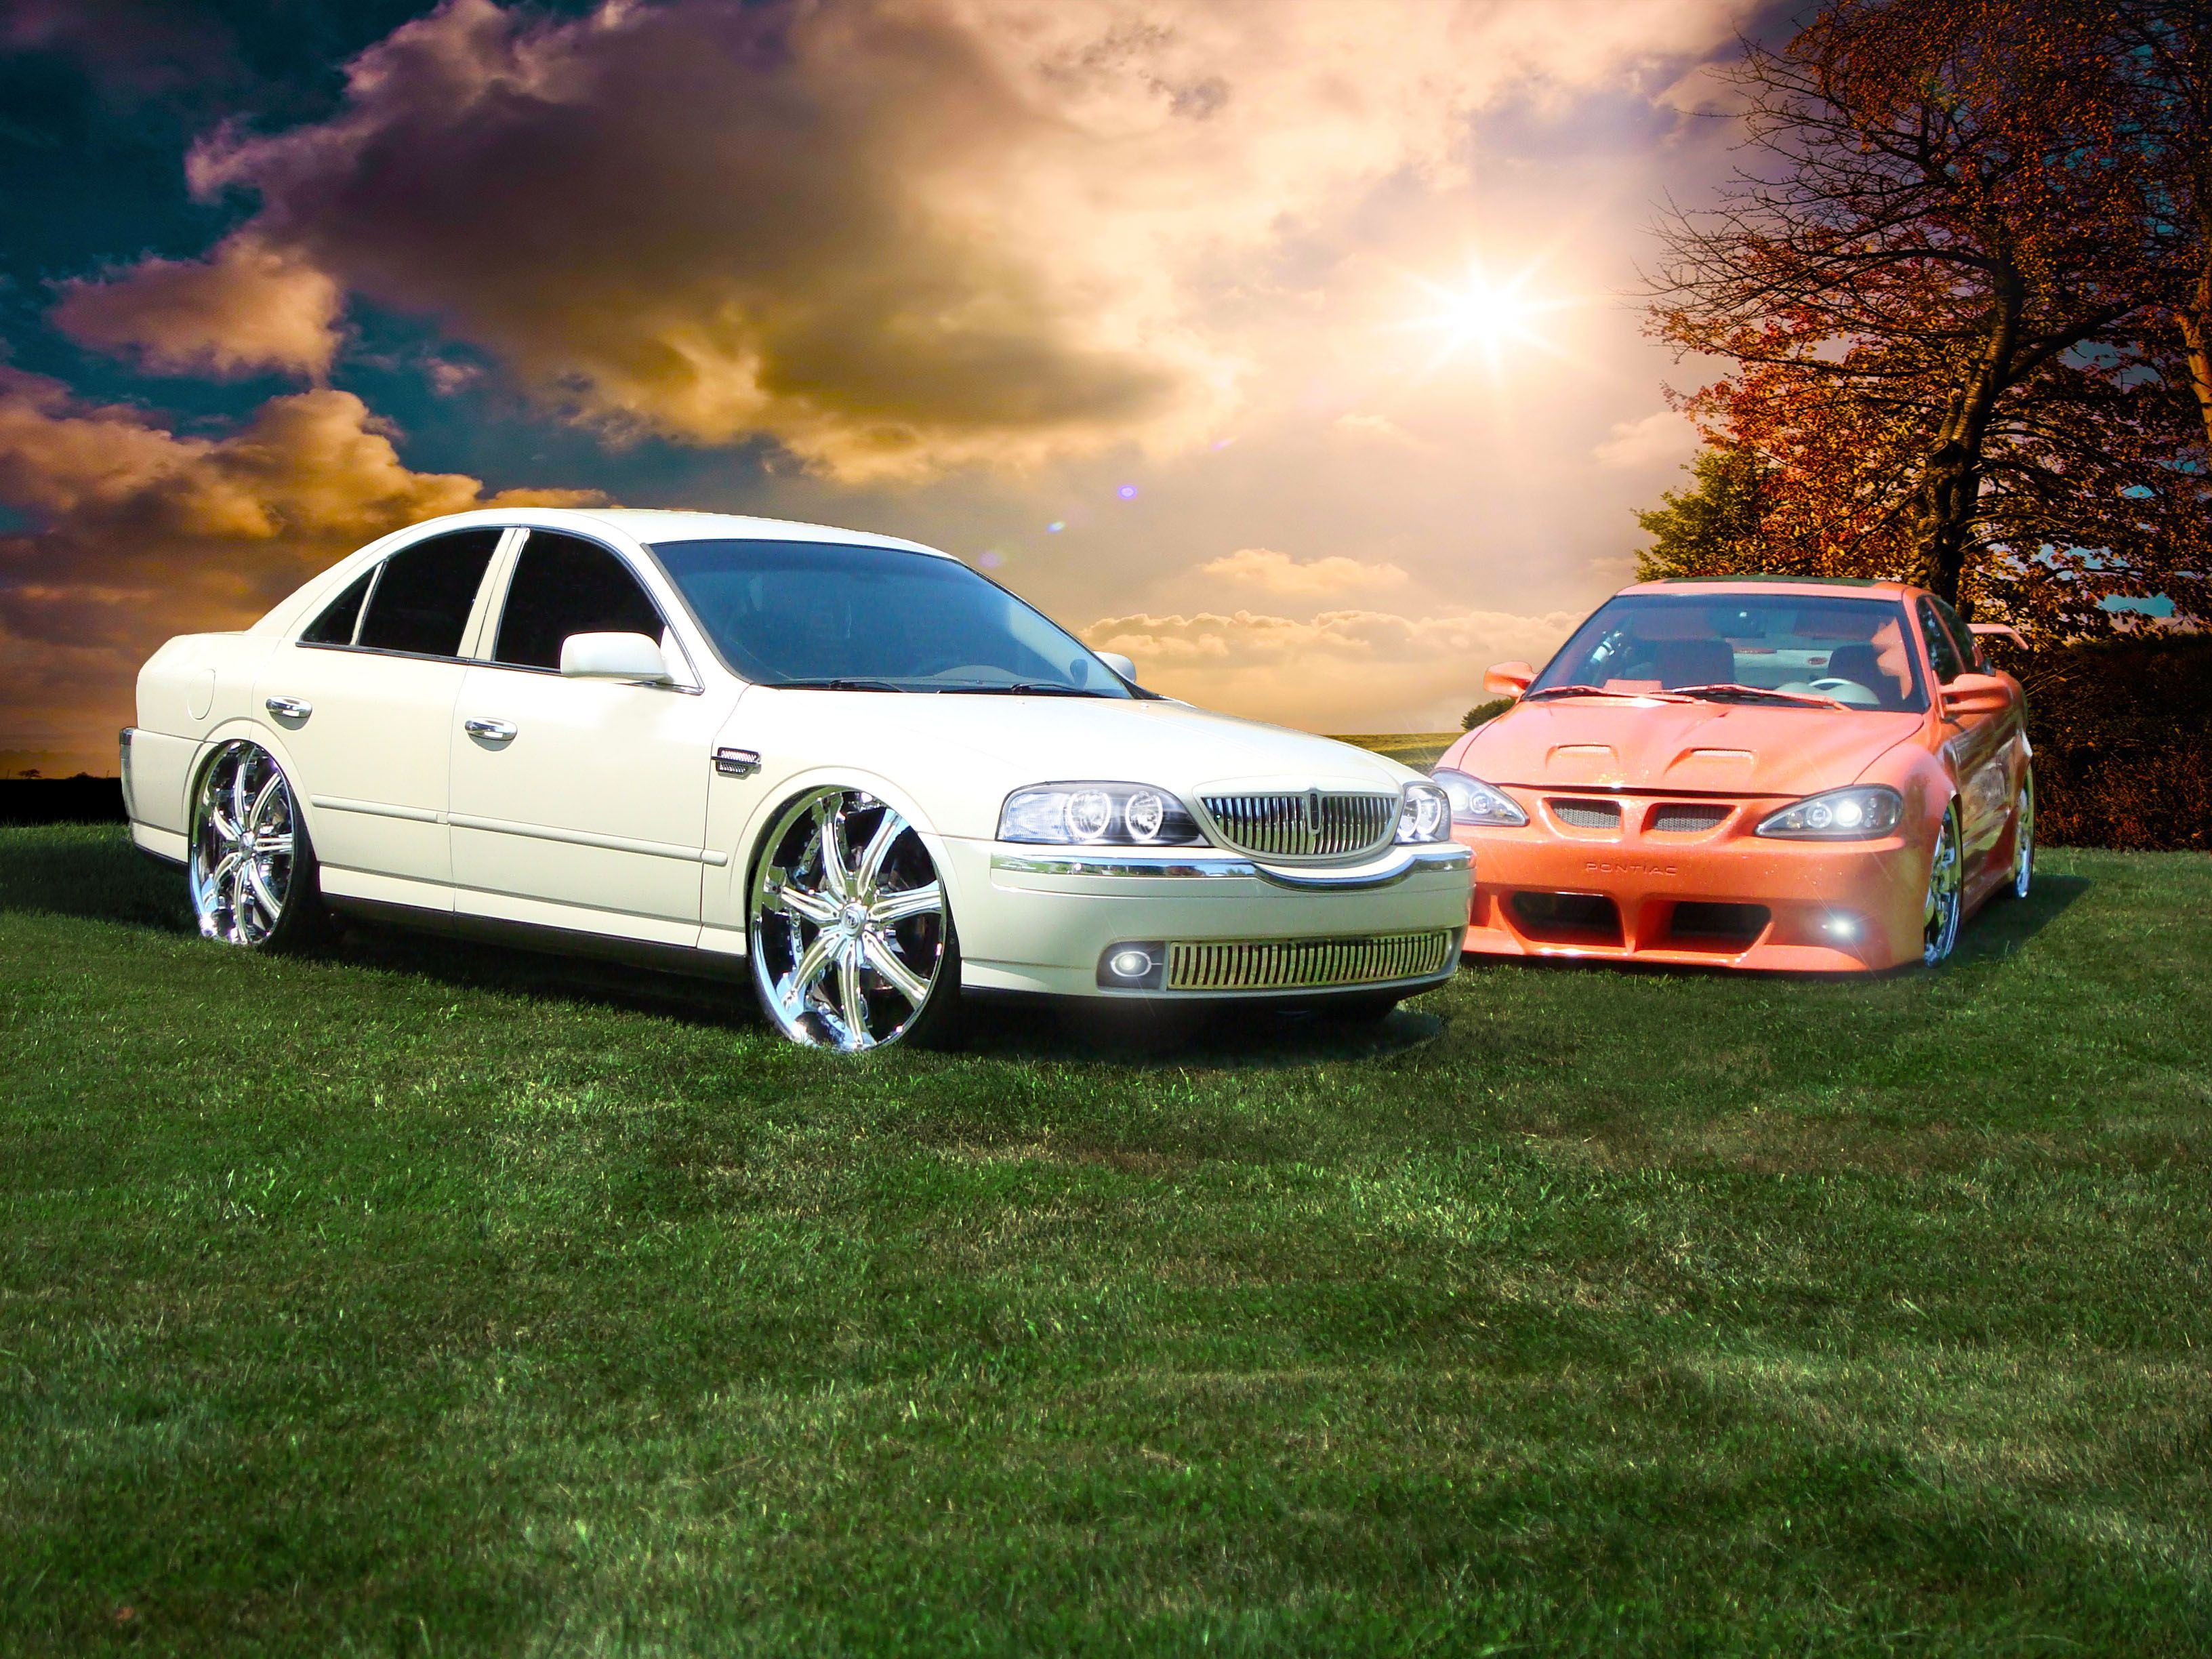 Lincoln ls if i had tons of money and diferent prioraties thats